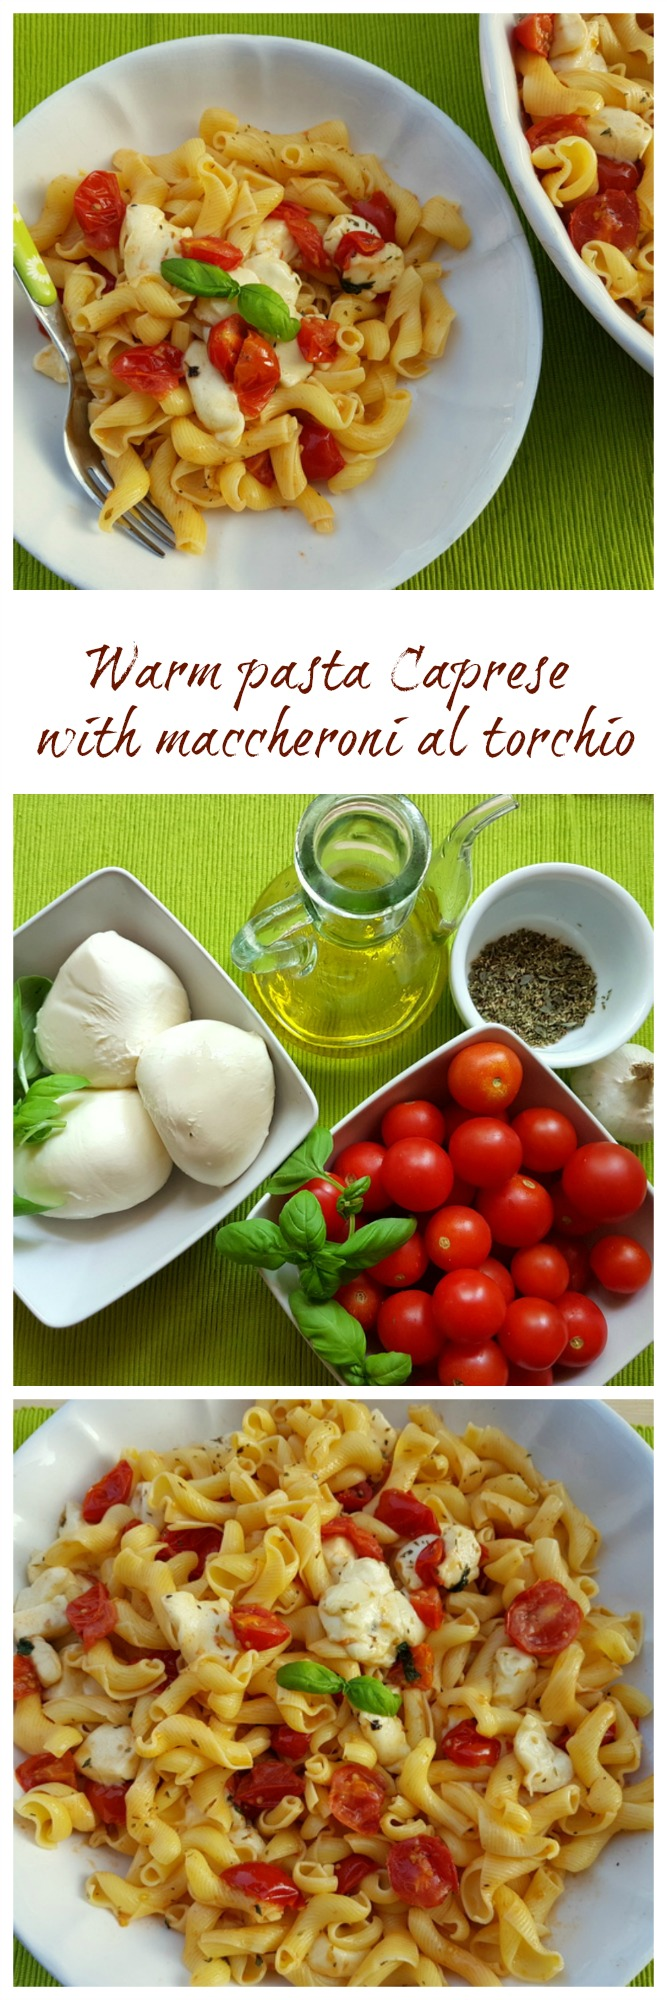 warm pasta caprese with maccheroni al torchio